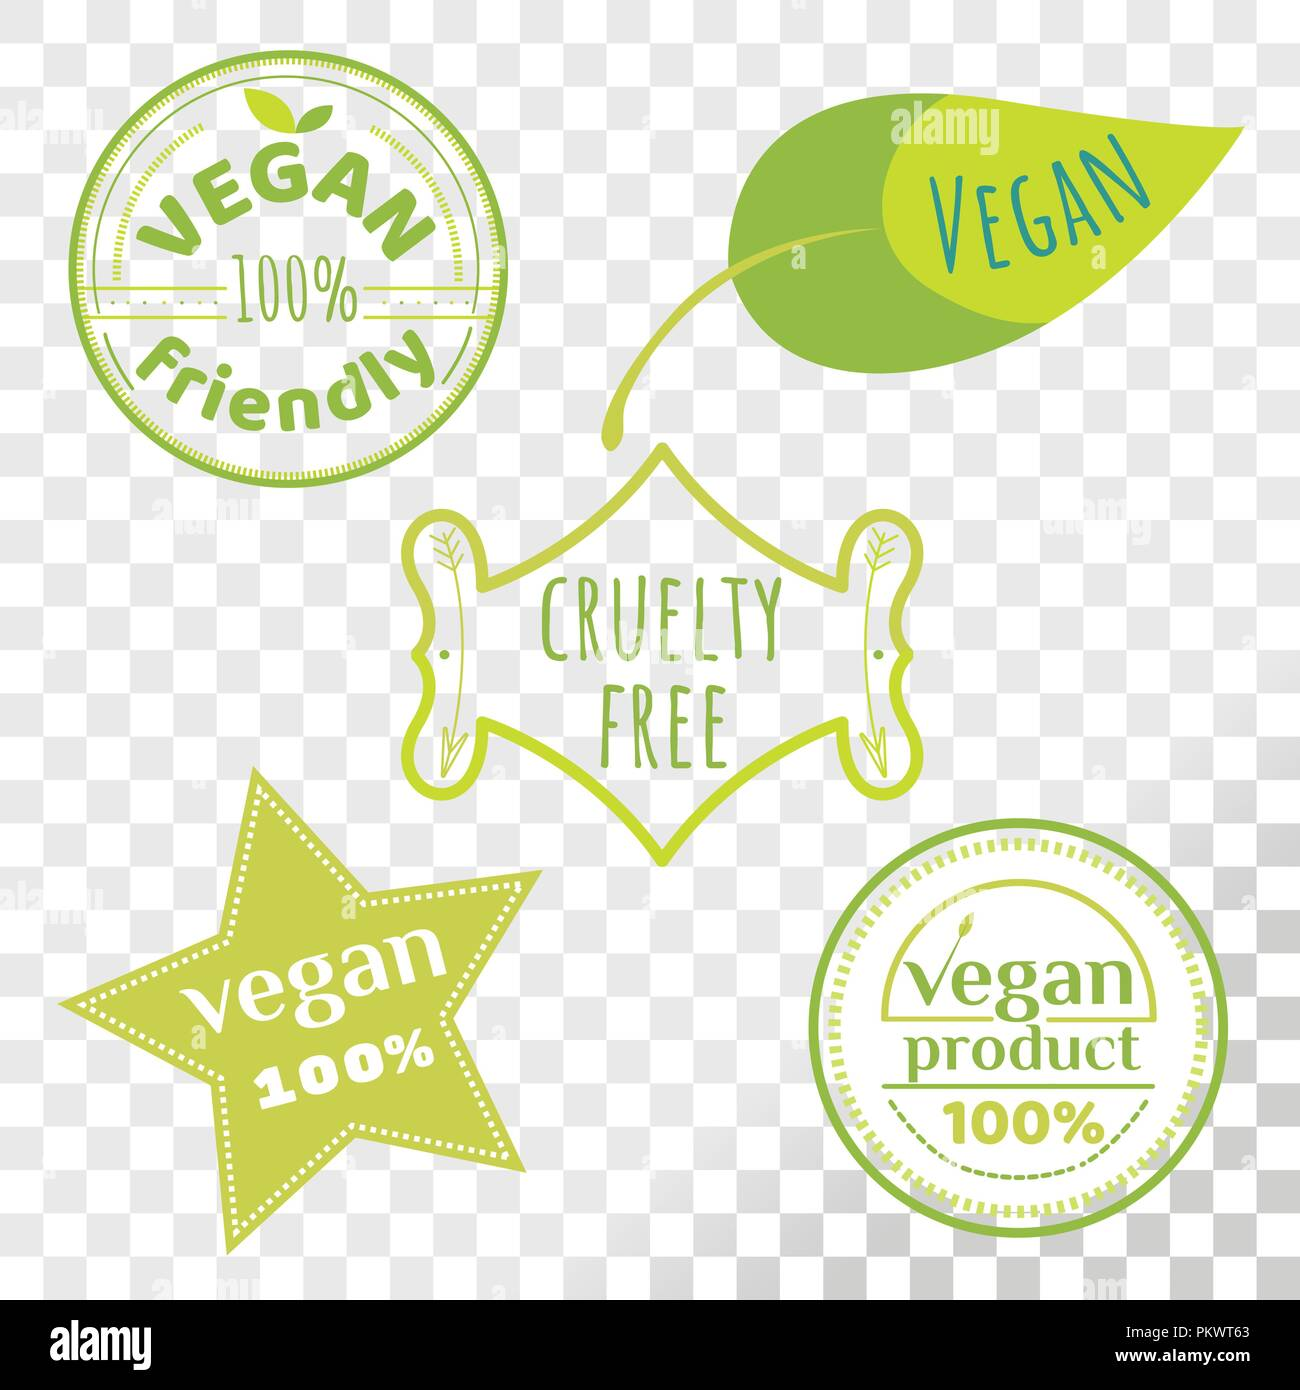 Vegan free labels collection isolated on transparent background. Set of cruelty free emblems that proves animal rights protection. - Stock Image